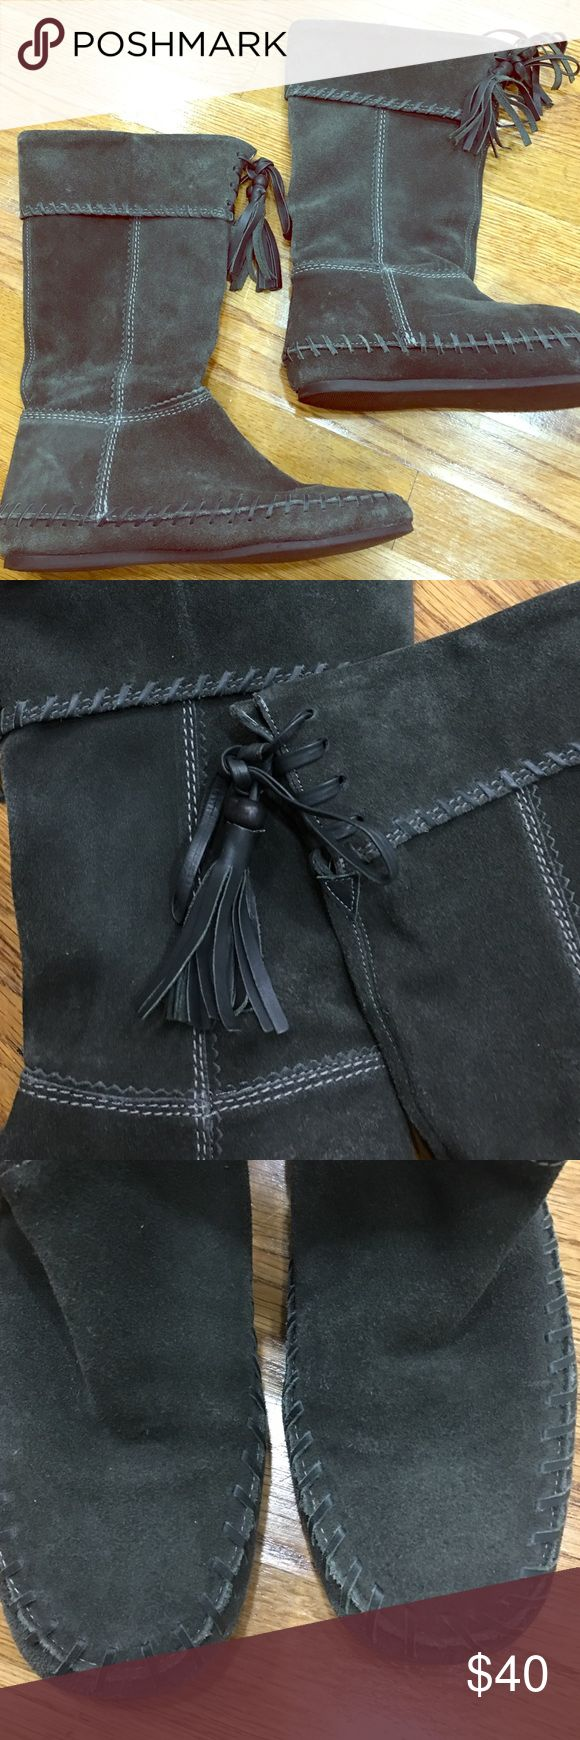 River Island fringed boots Size 7 suede fringed boots. Prelove condition but still looks great and comfortable. Below the knee boots River Island Shoes